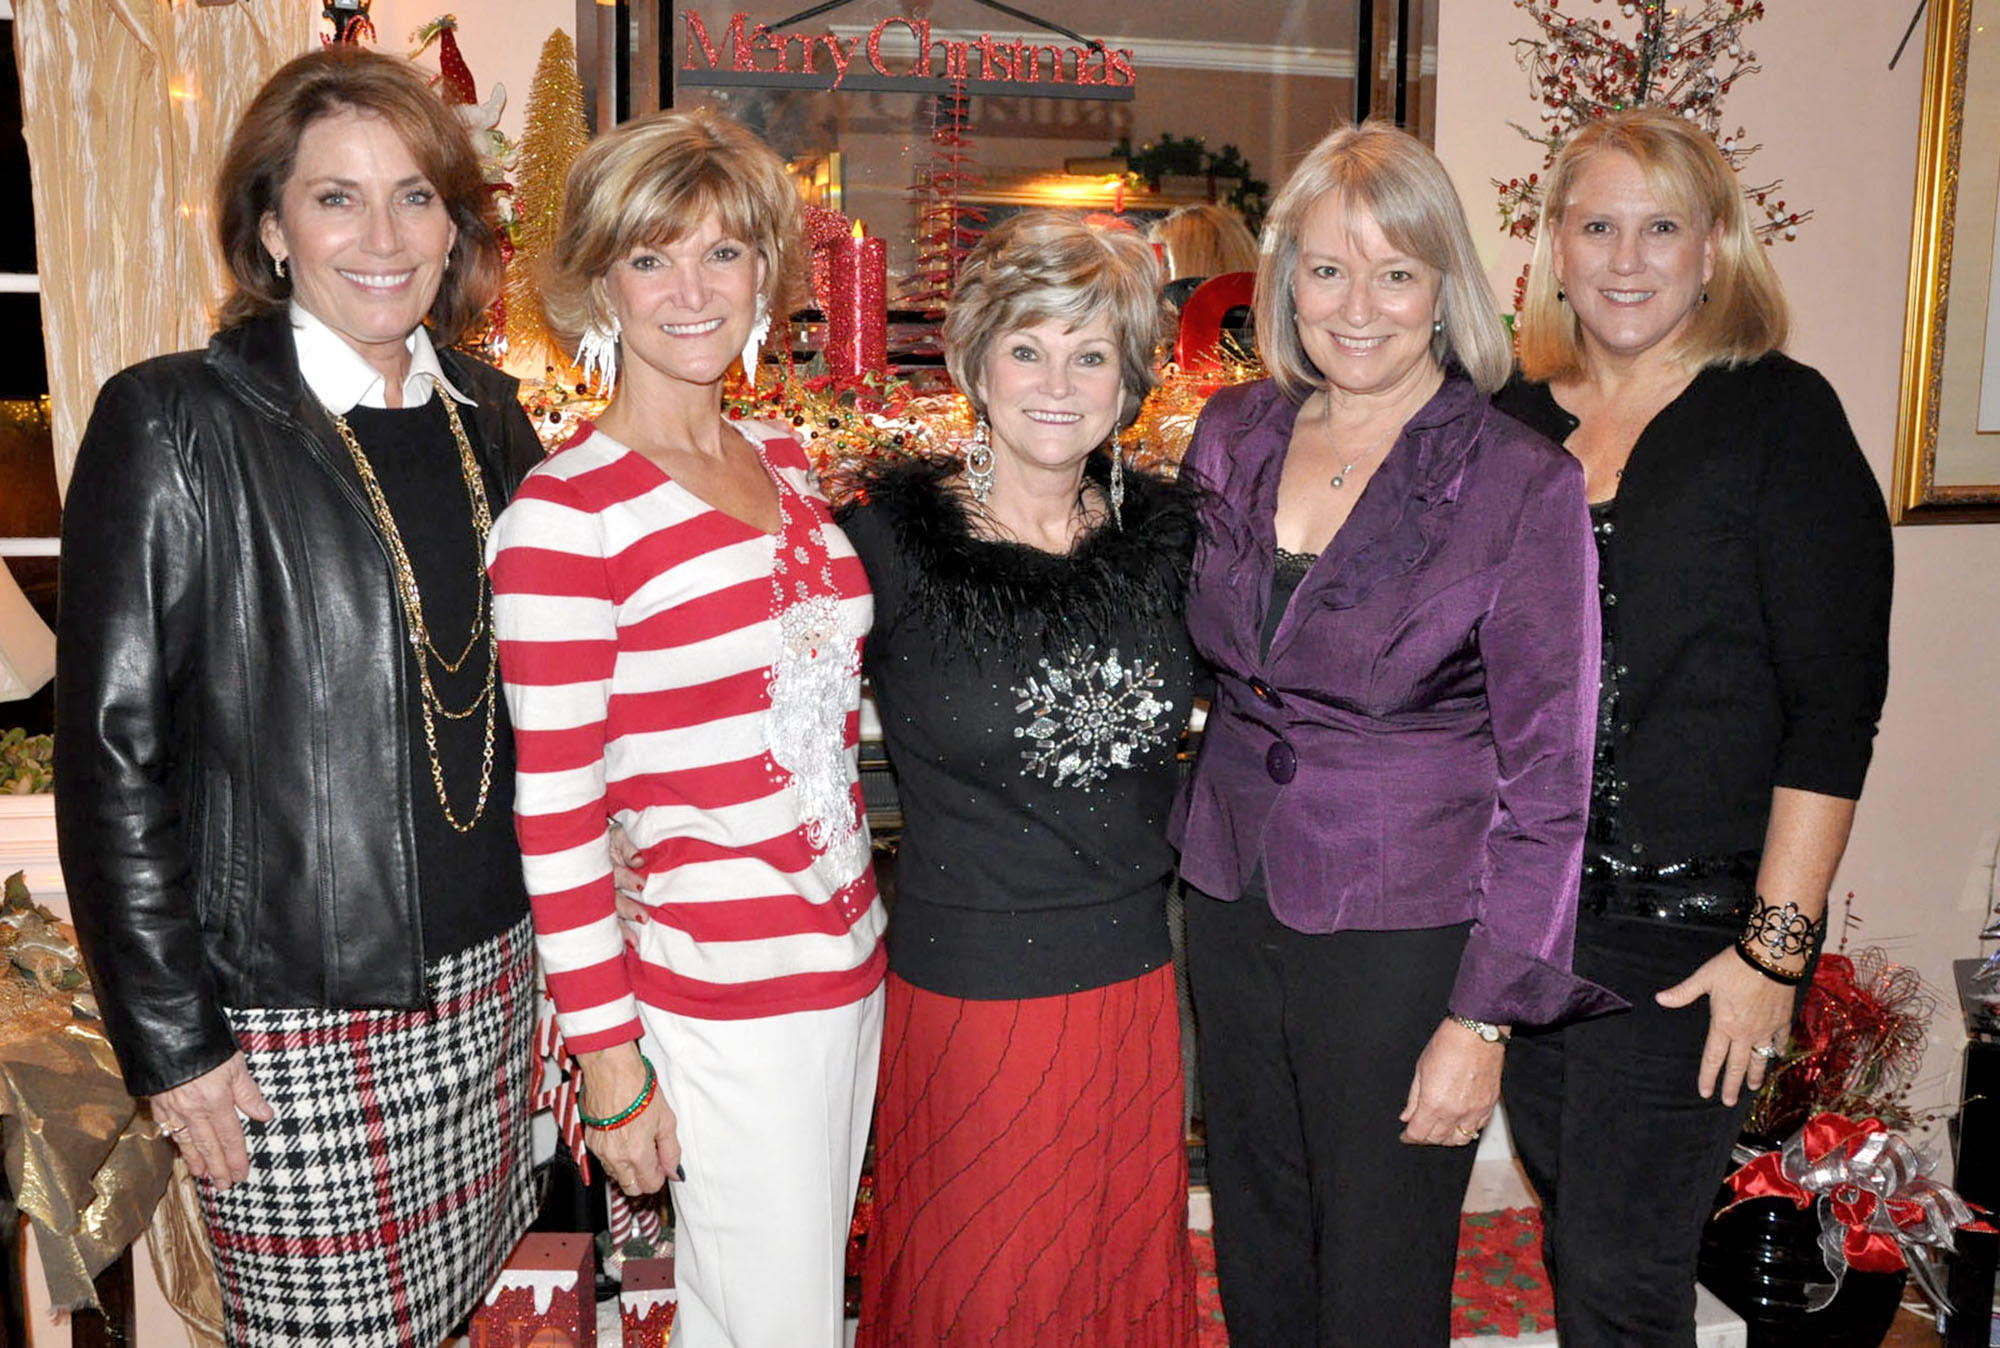 Los Altos Auxiliary members of the Hathaway-Sycamores Residential Facility, gather for its annual Christmas party. Pam MacDonald, event chair, from left, Sandi Melin and Karen Sellergren, co-hosts of the party, along with co-presidents Laurie Rodli and Jennifer Herzer, are ready to party.